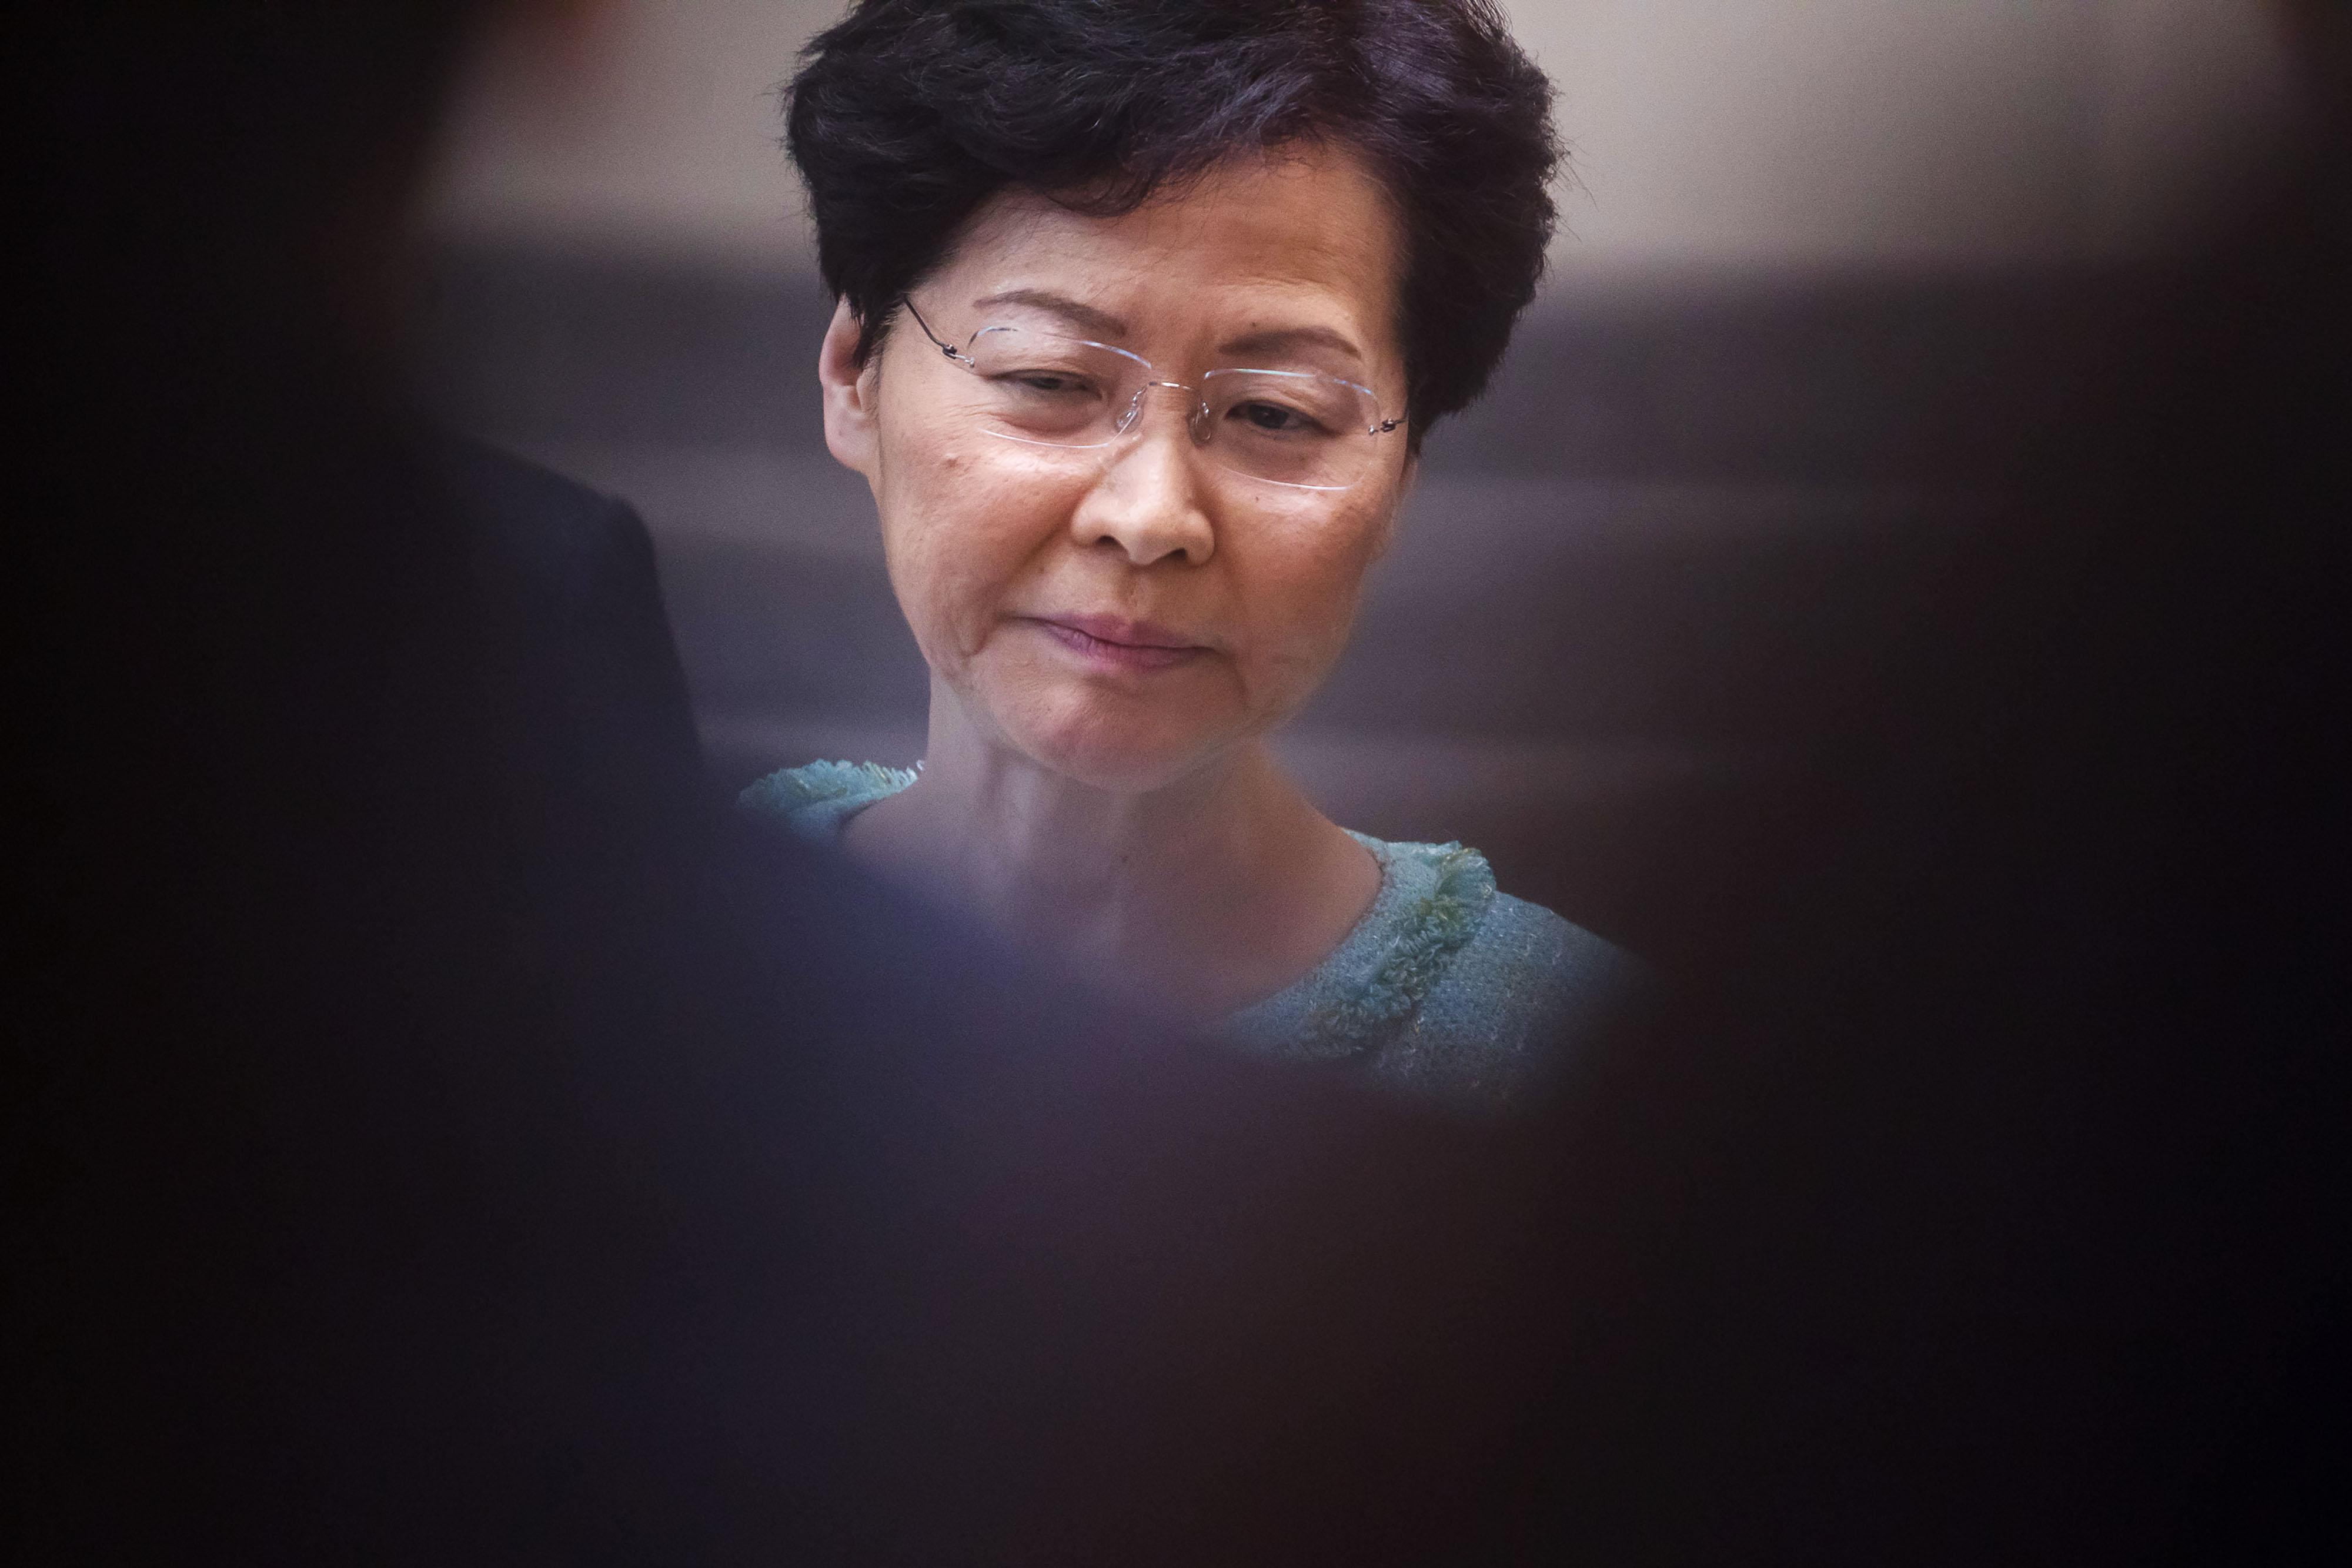 Hong Kong Leader Defends Police, Dodges Questions and Chokes Up in Press Briefing